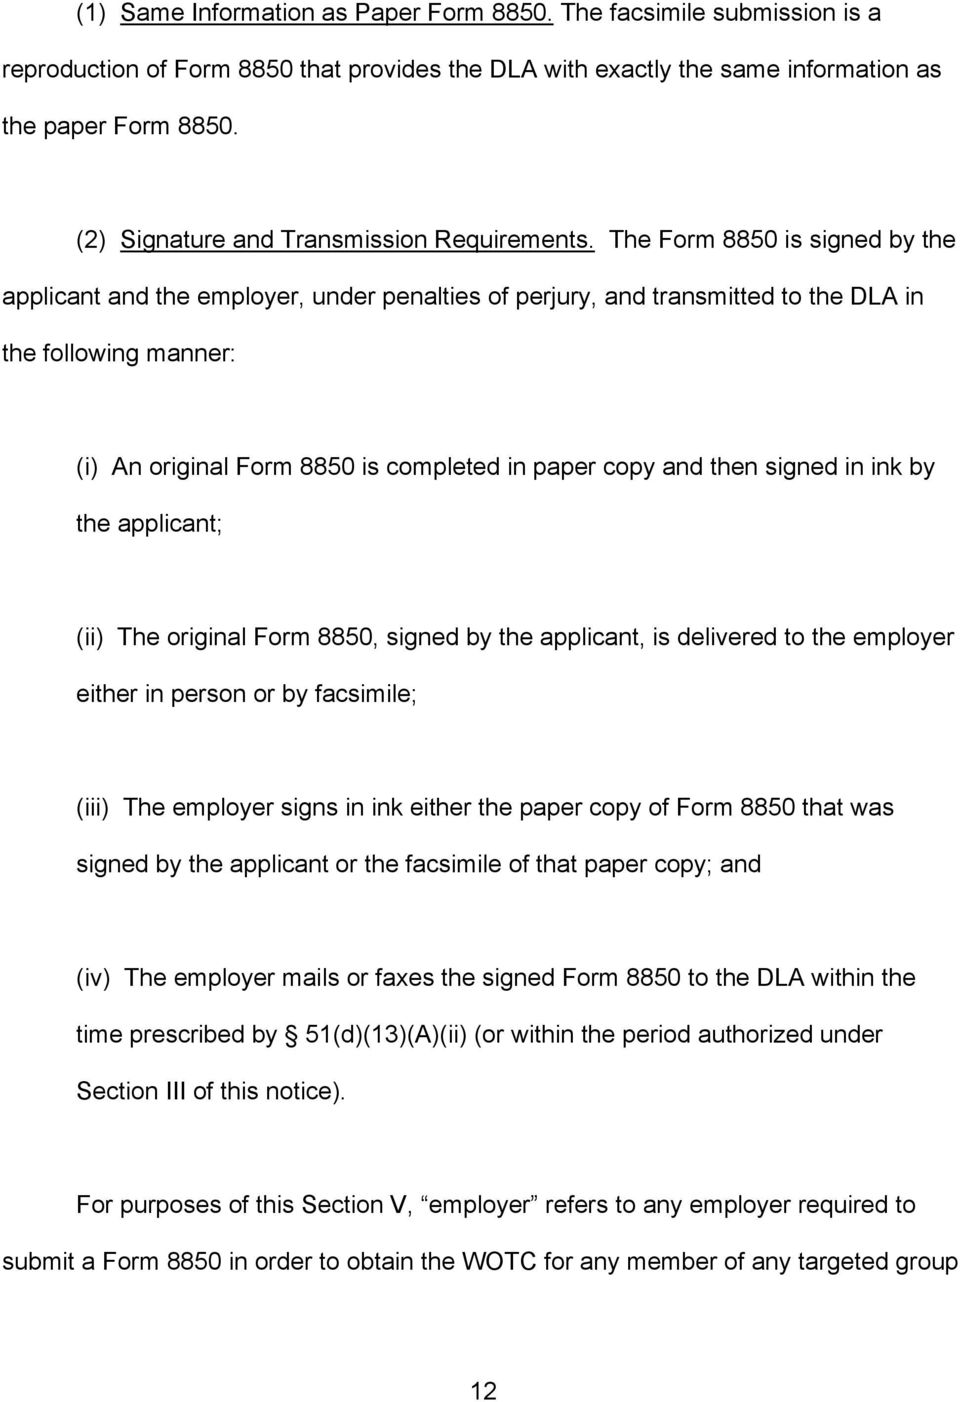 The Form 8850 is signed by the applicant and the employer, under penalties of perjury, and transmitted to the DLA in the following manner: (i) An original Form 8850 is completed in paper copy and